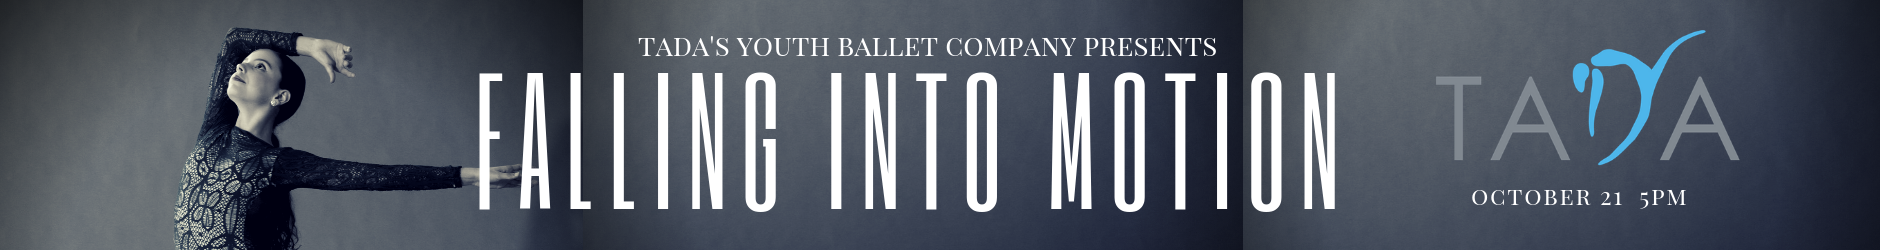 Texas Academy of Dance Arts - Falling into Motion Web Banner